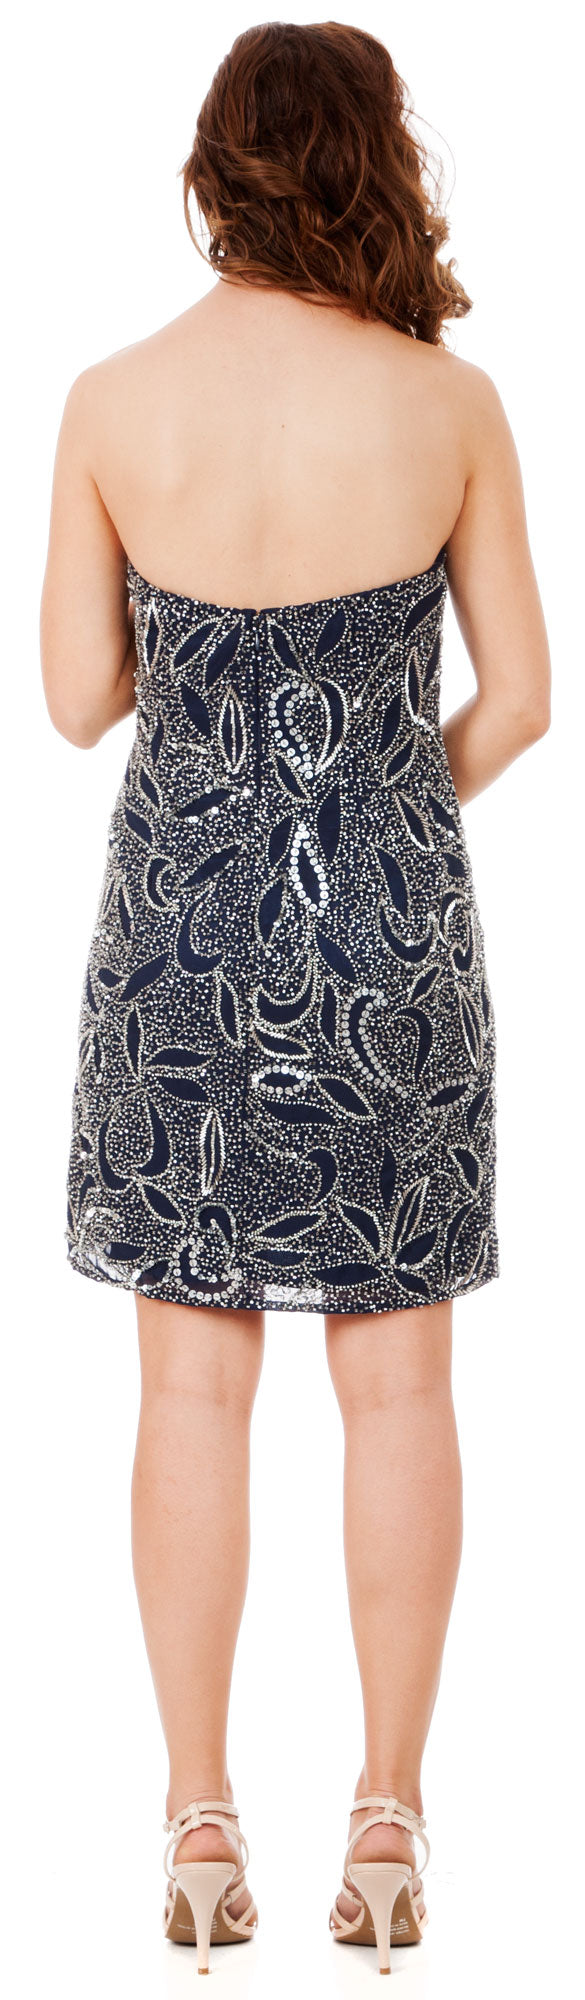 Back image of Strapless Leaves Pattern Short Beaded Homecoming Party Dress